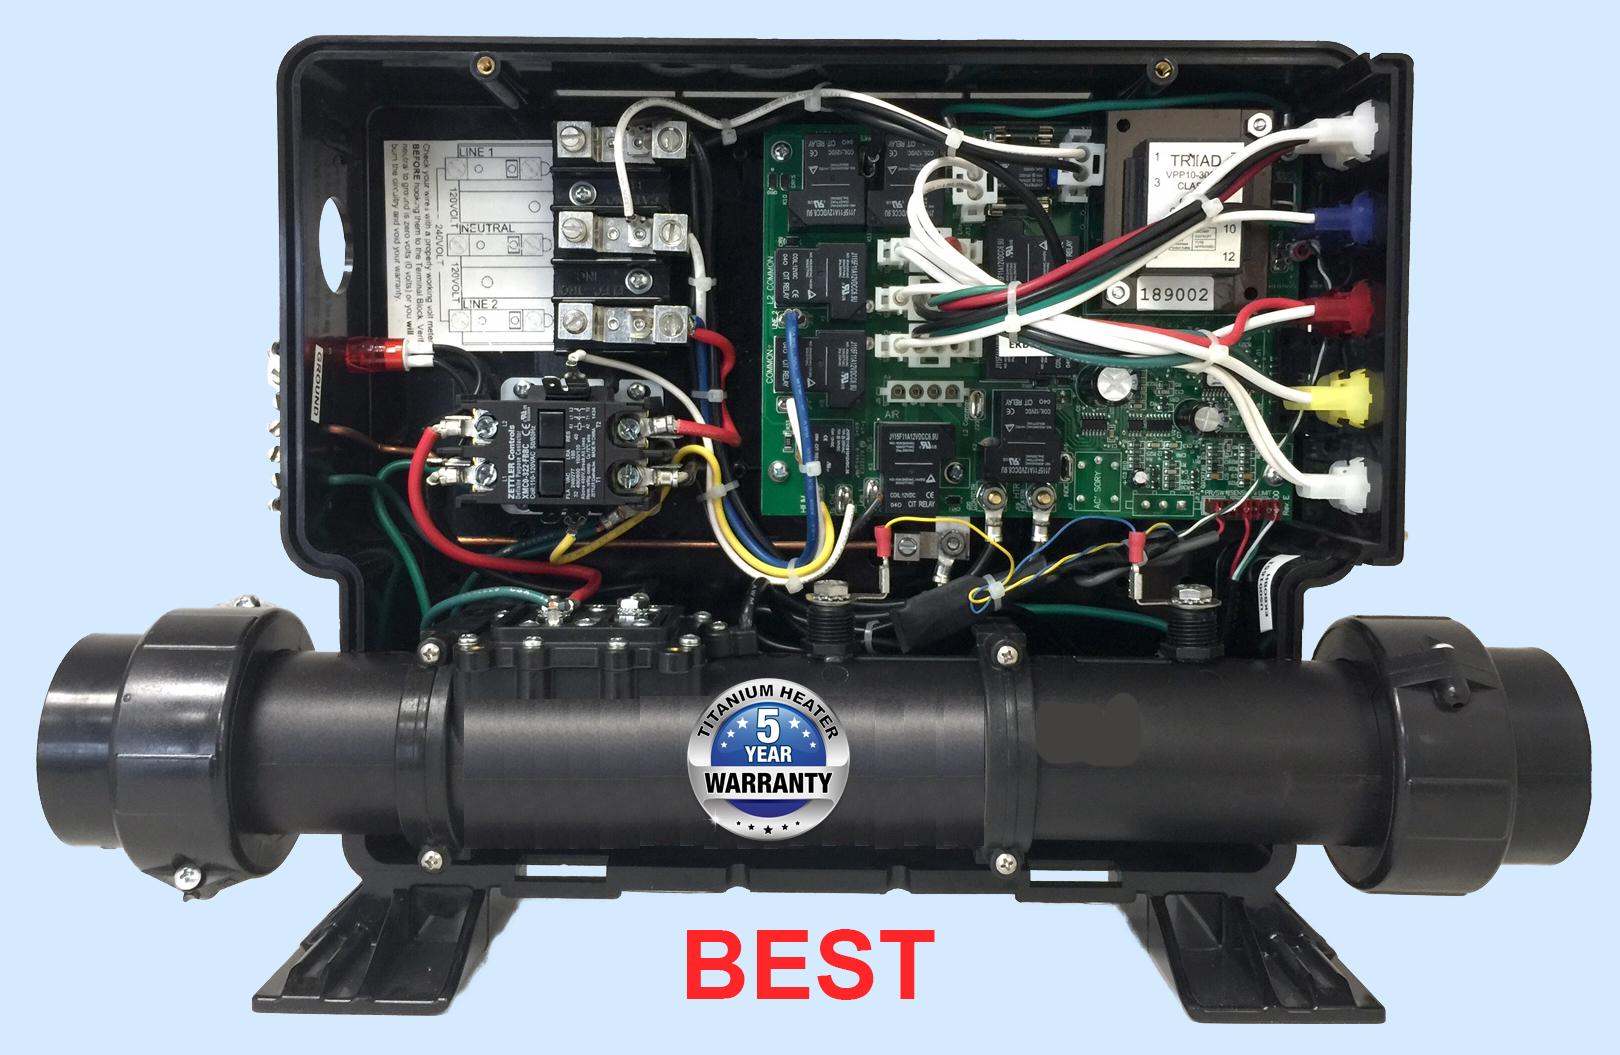 USC_CosmoHeat_Warranty_Open_best replacement maax spas control for $269 95 free freight mfg direct spa power 750 wiring diagram at gsmportal.co